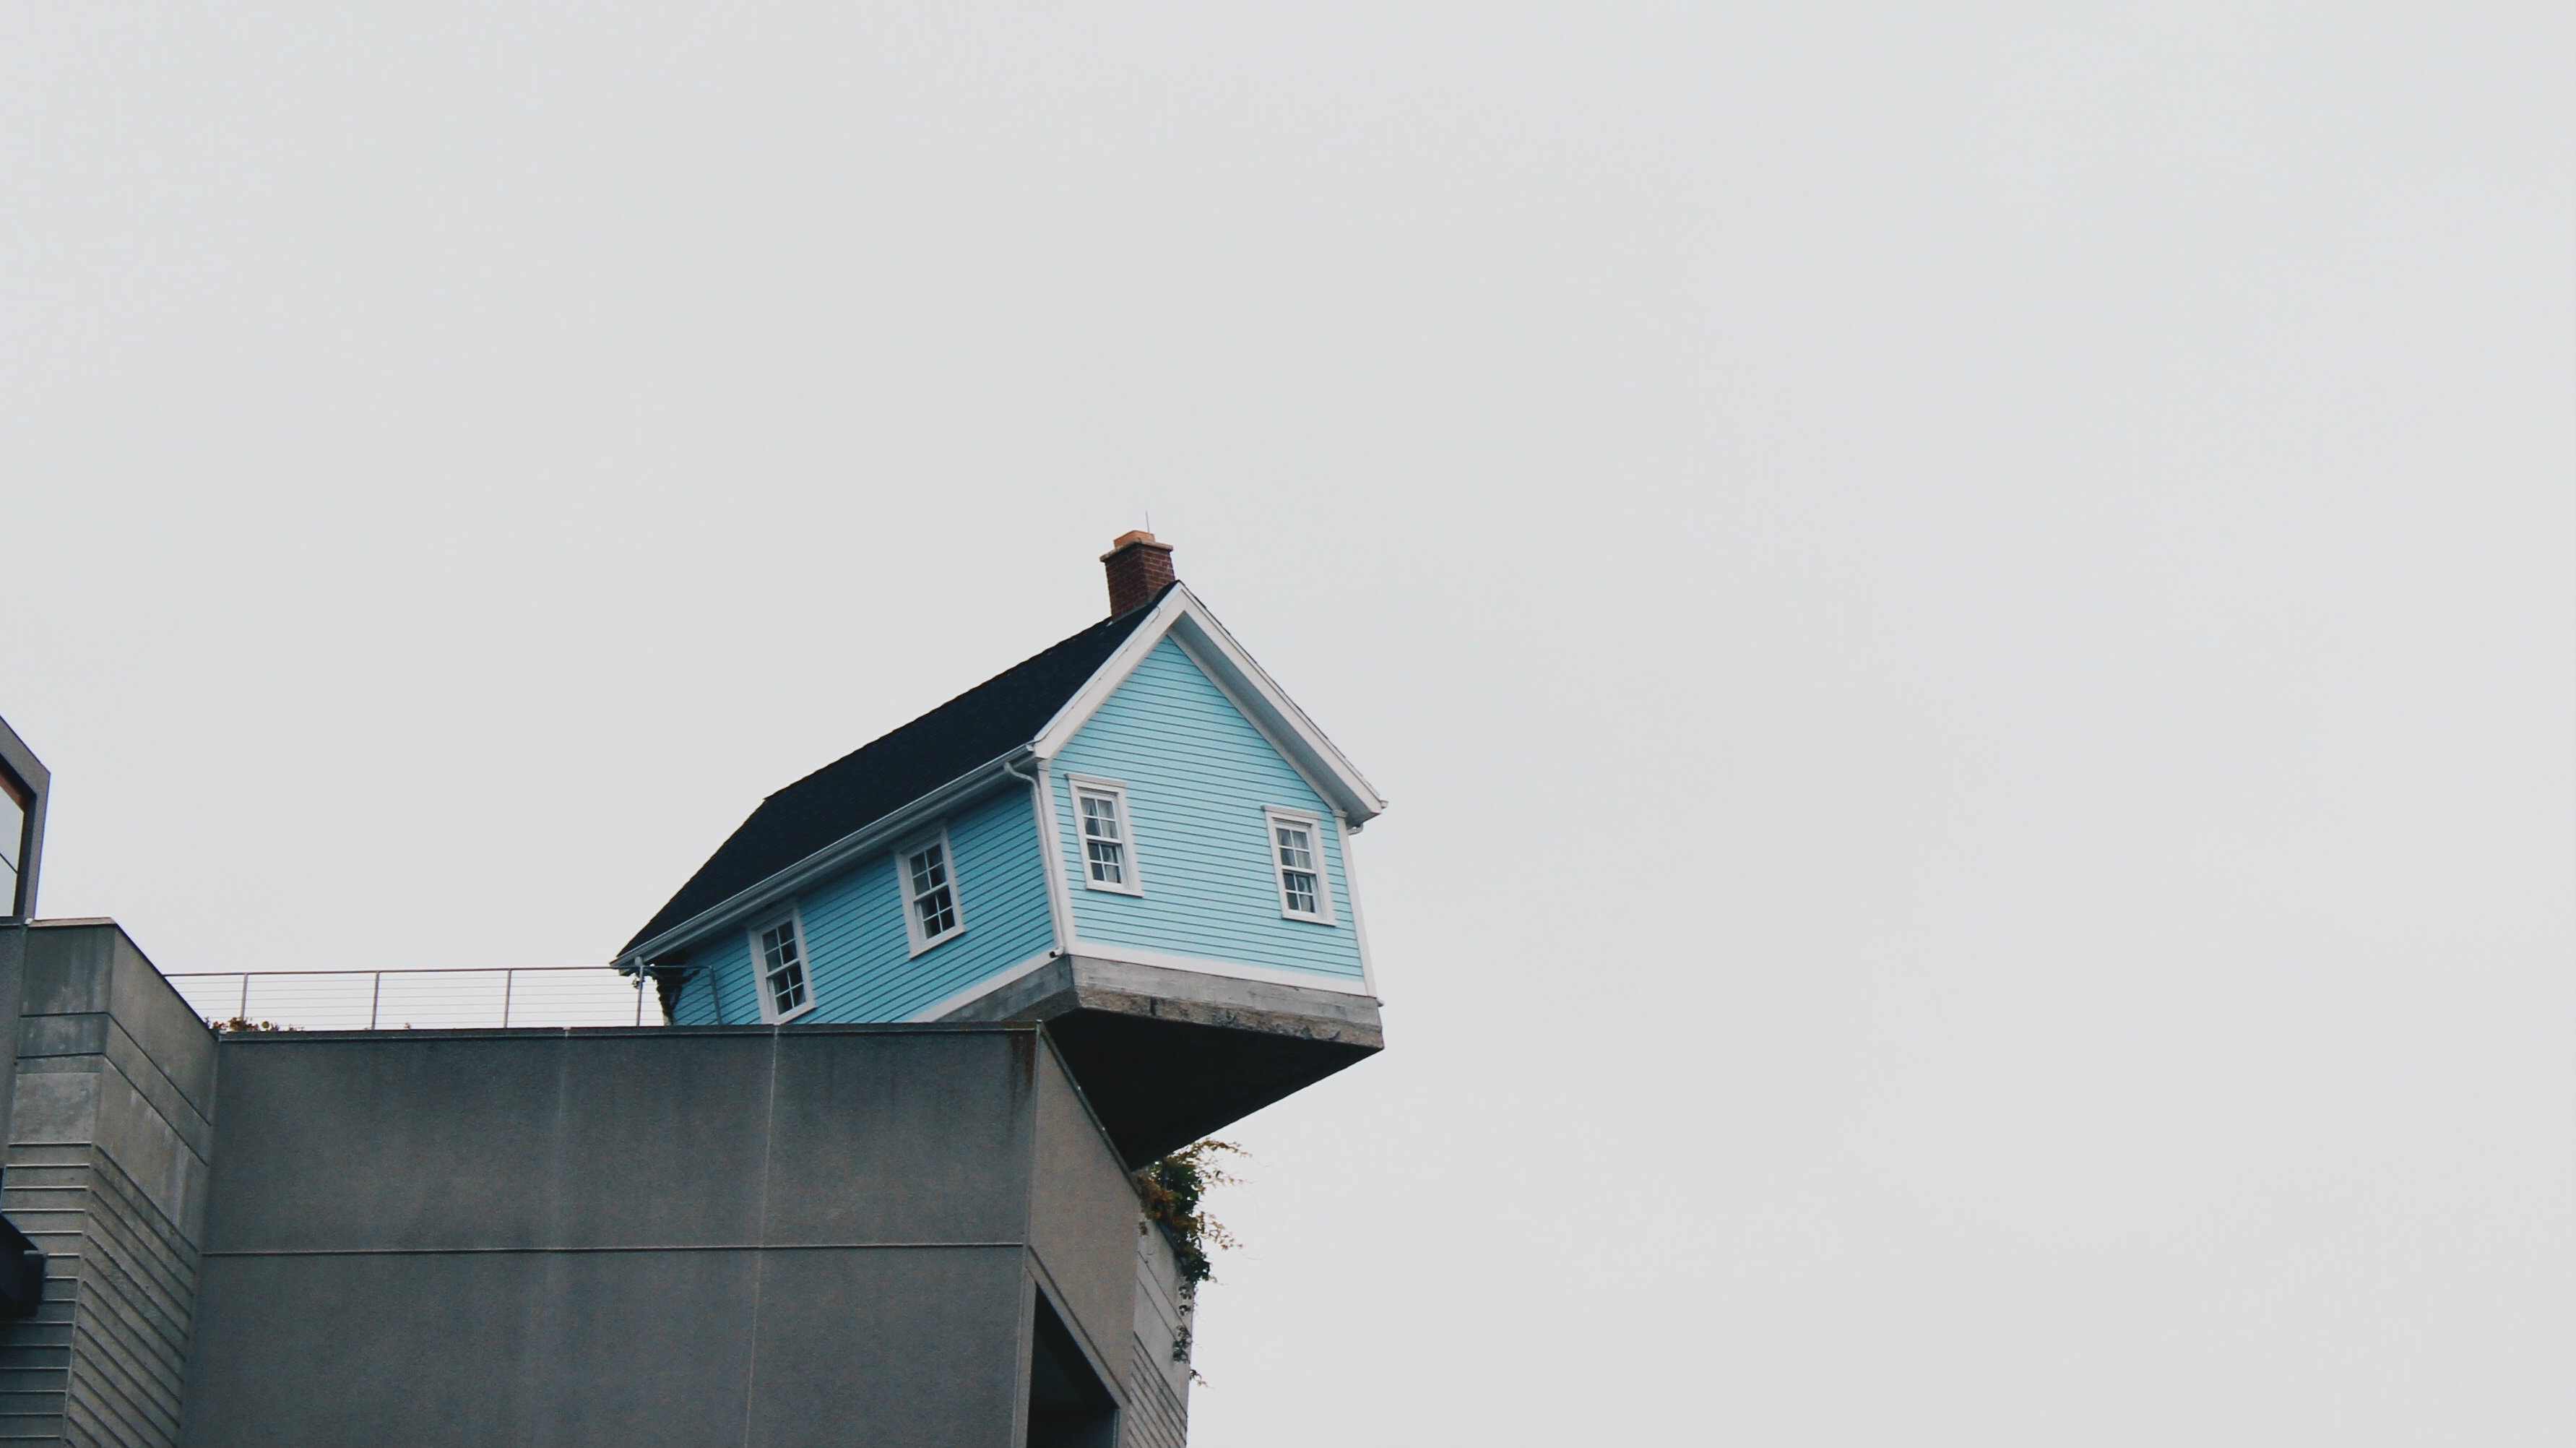 A house that is teetering on the edge of a building.